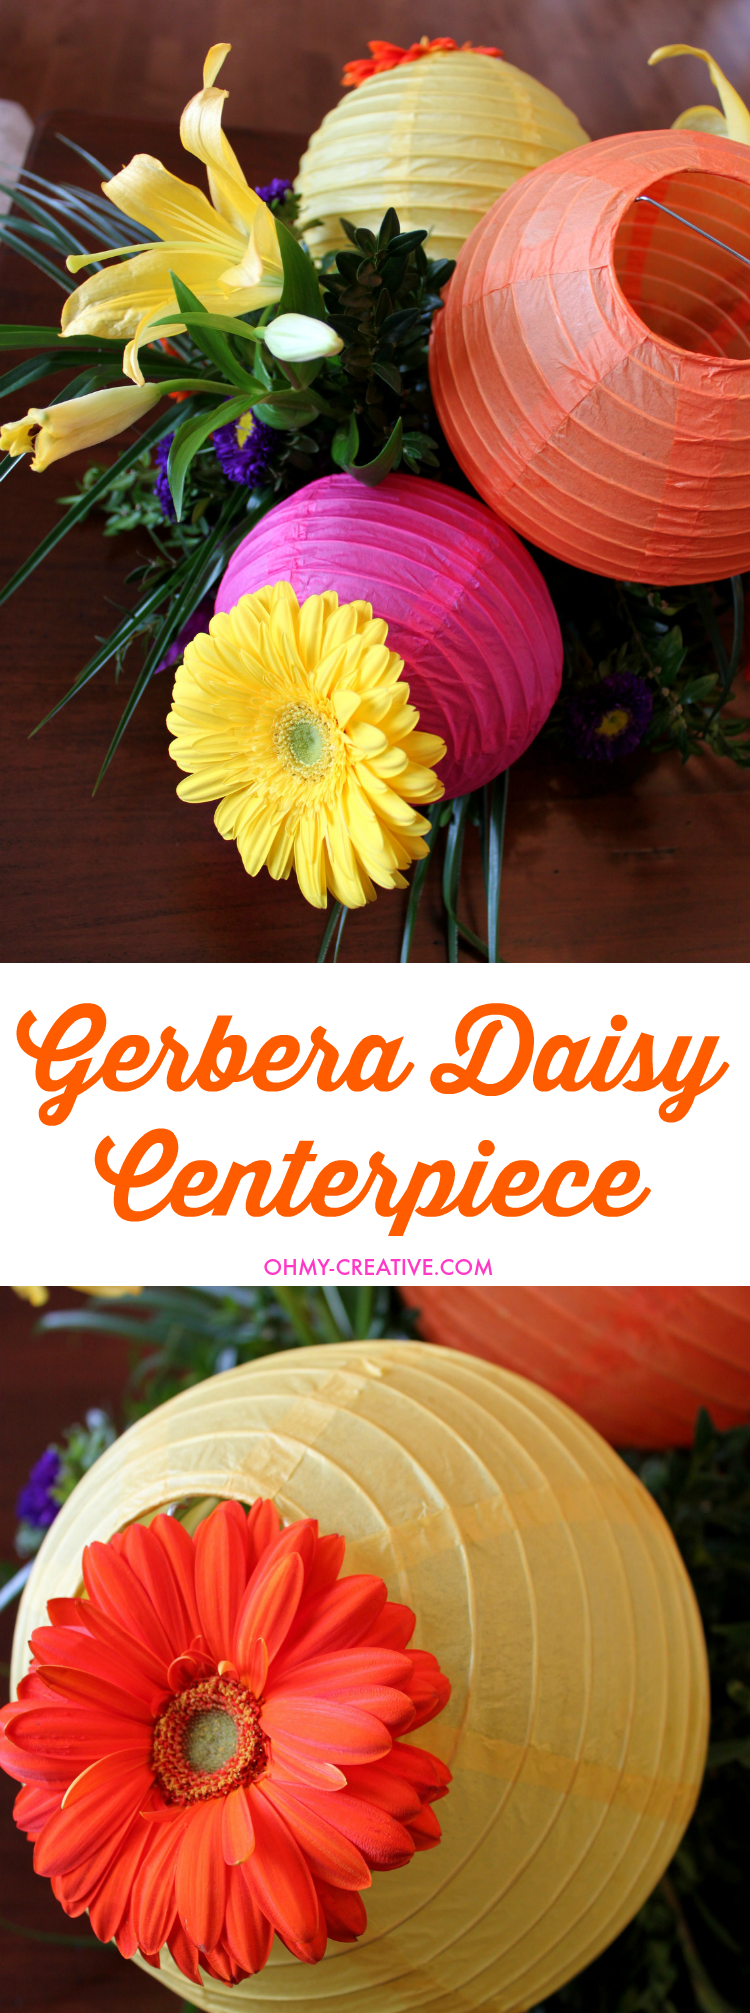 Gerbera daisies are one of my favorite flowers. The incredible vibrant blooms make them a perfect flower for so many occasions like this Gerbera Daisy Centerpiece! This gorgeous centerpiece is perfect for bridal showers, weddings and summer parties! I love the paper lanterns too!  |   OHMY-CREATIVE.COM